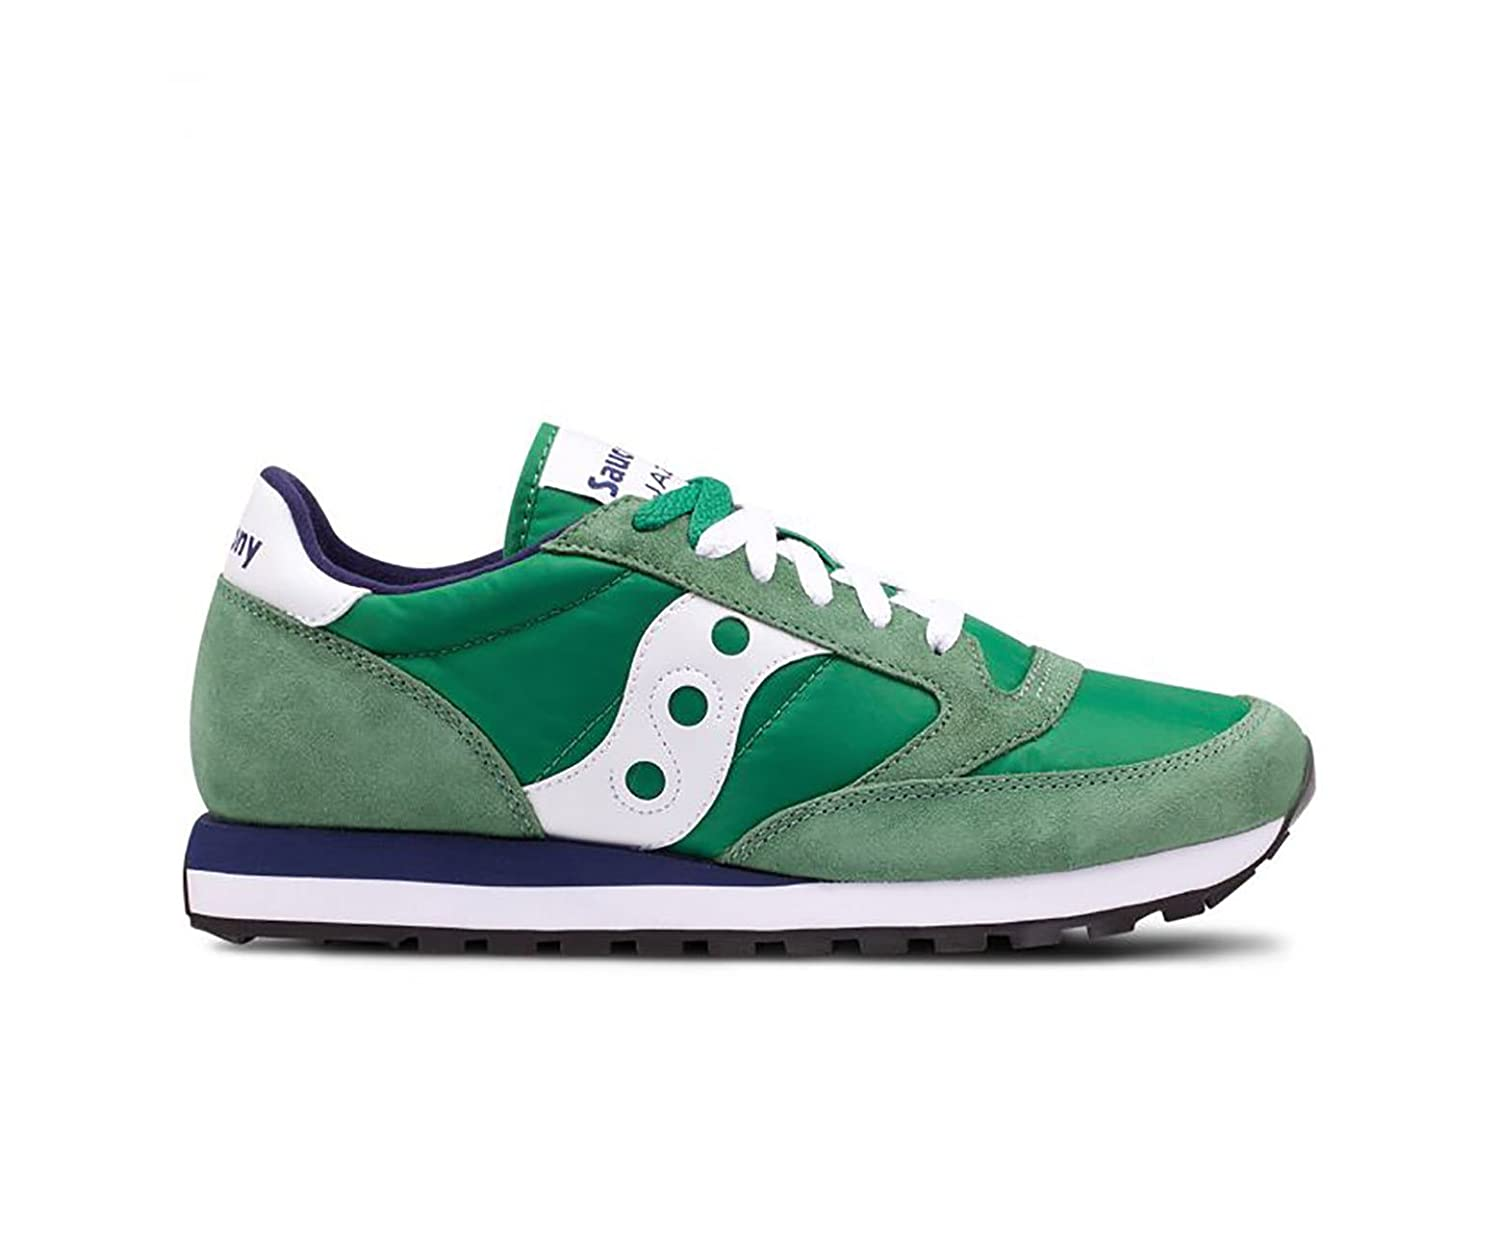 Sneakers Jazz Original Green - White, Hombre. 10,5